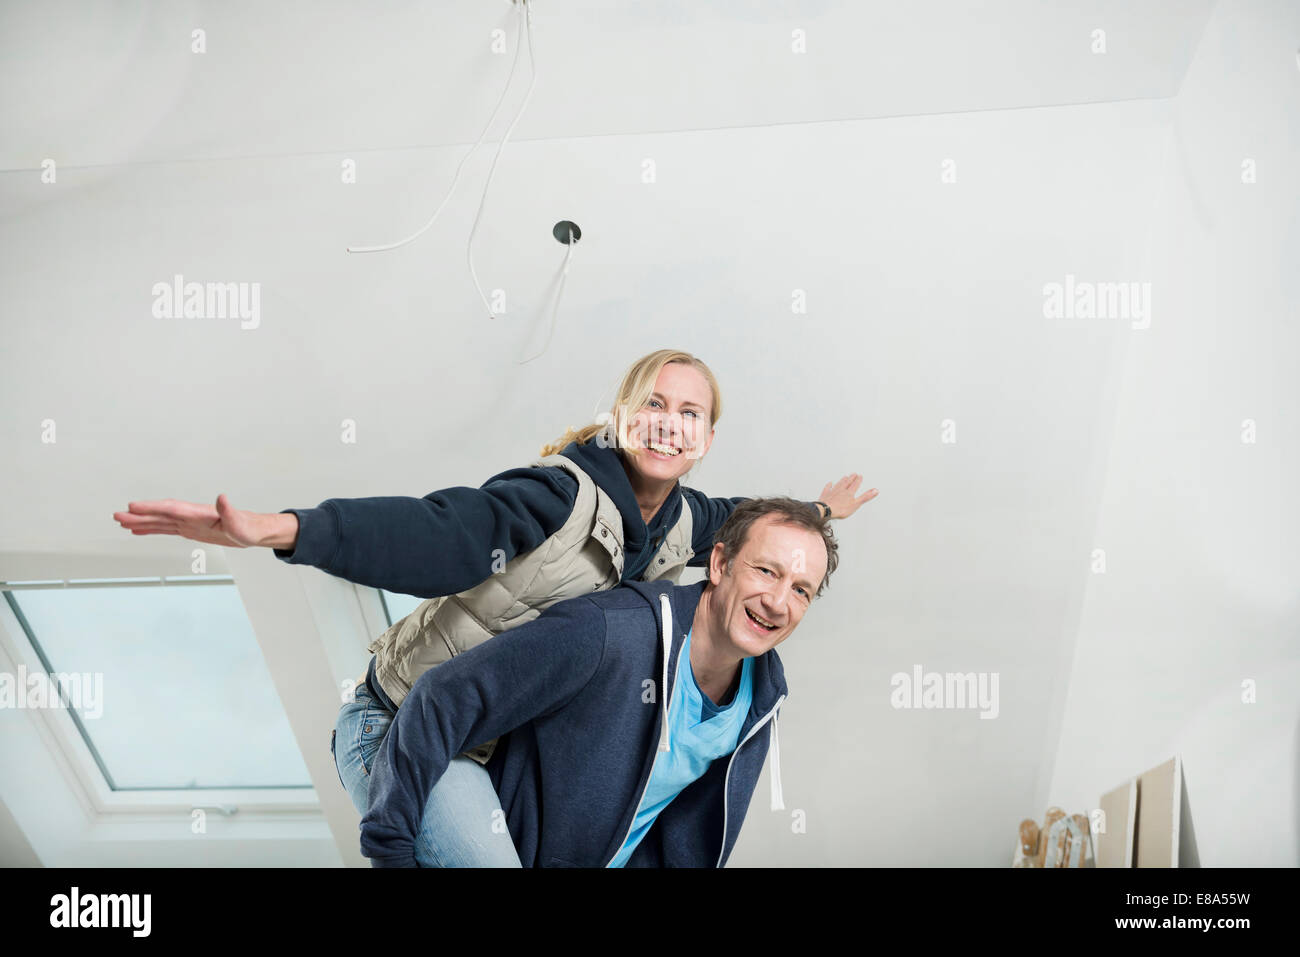 Man giving his female partner a piggyback while renovation - Stock Image